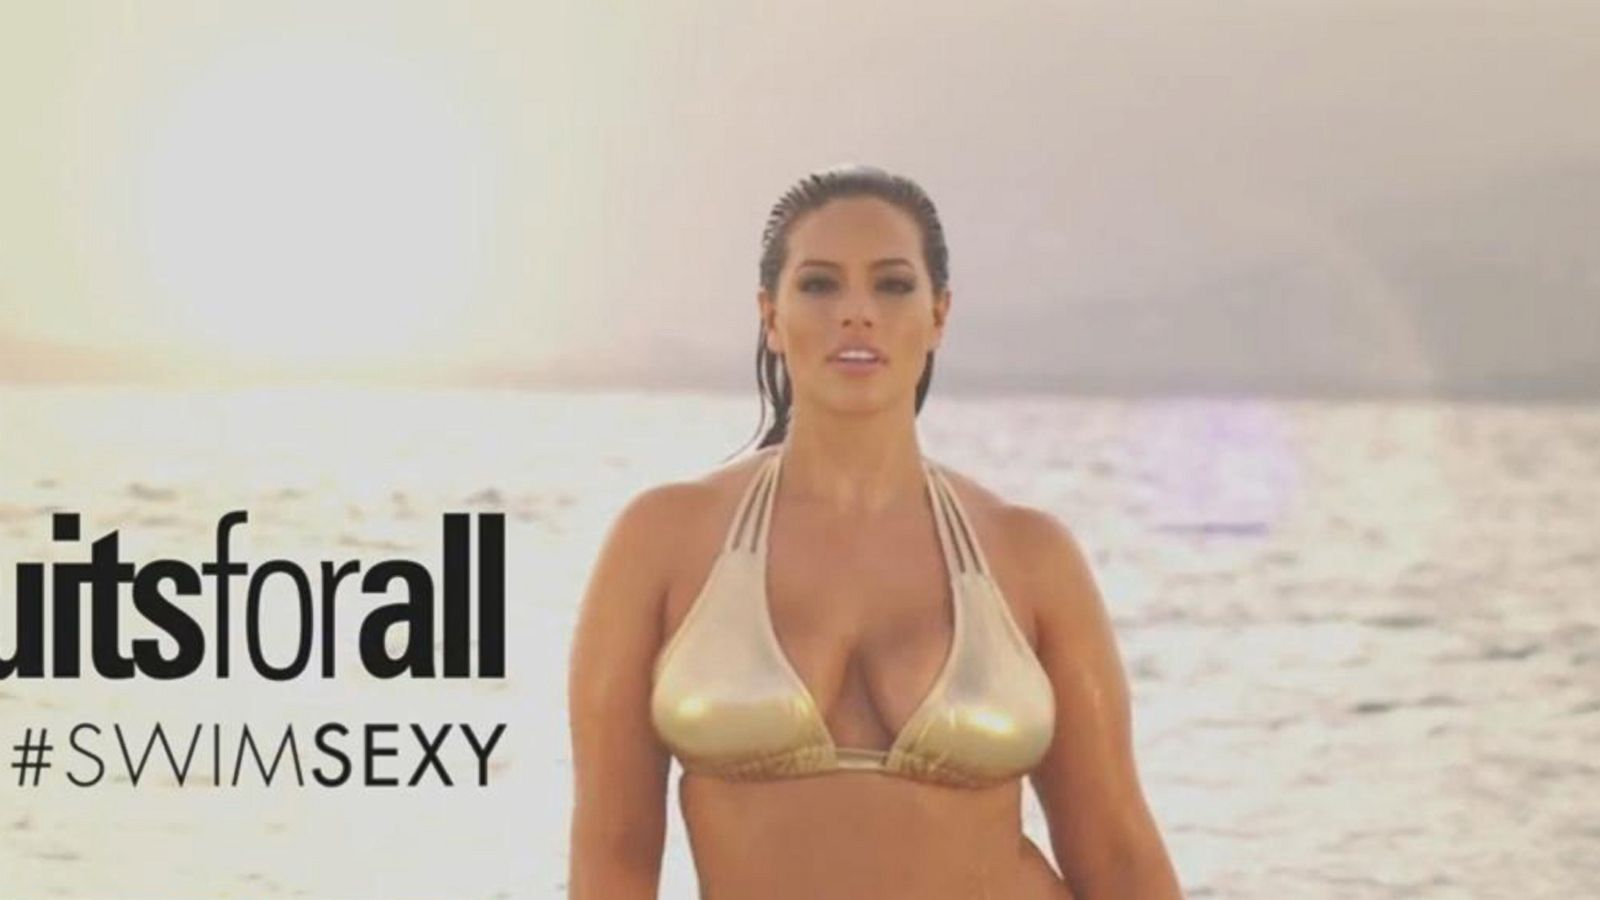 b523a6c726157 Plus-Size Model Featured in Sports Illustrated Swimsuit Issue - ABC News